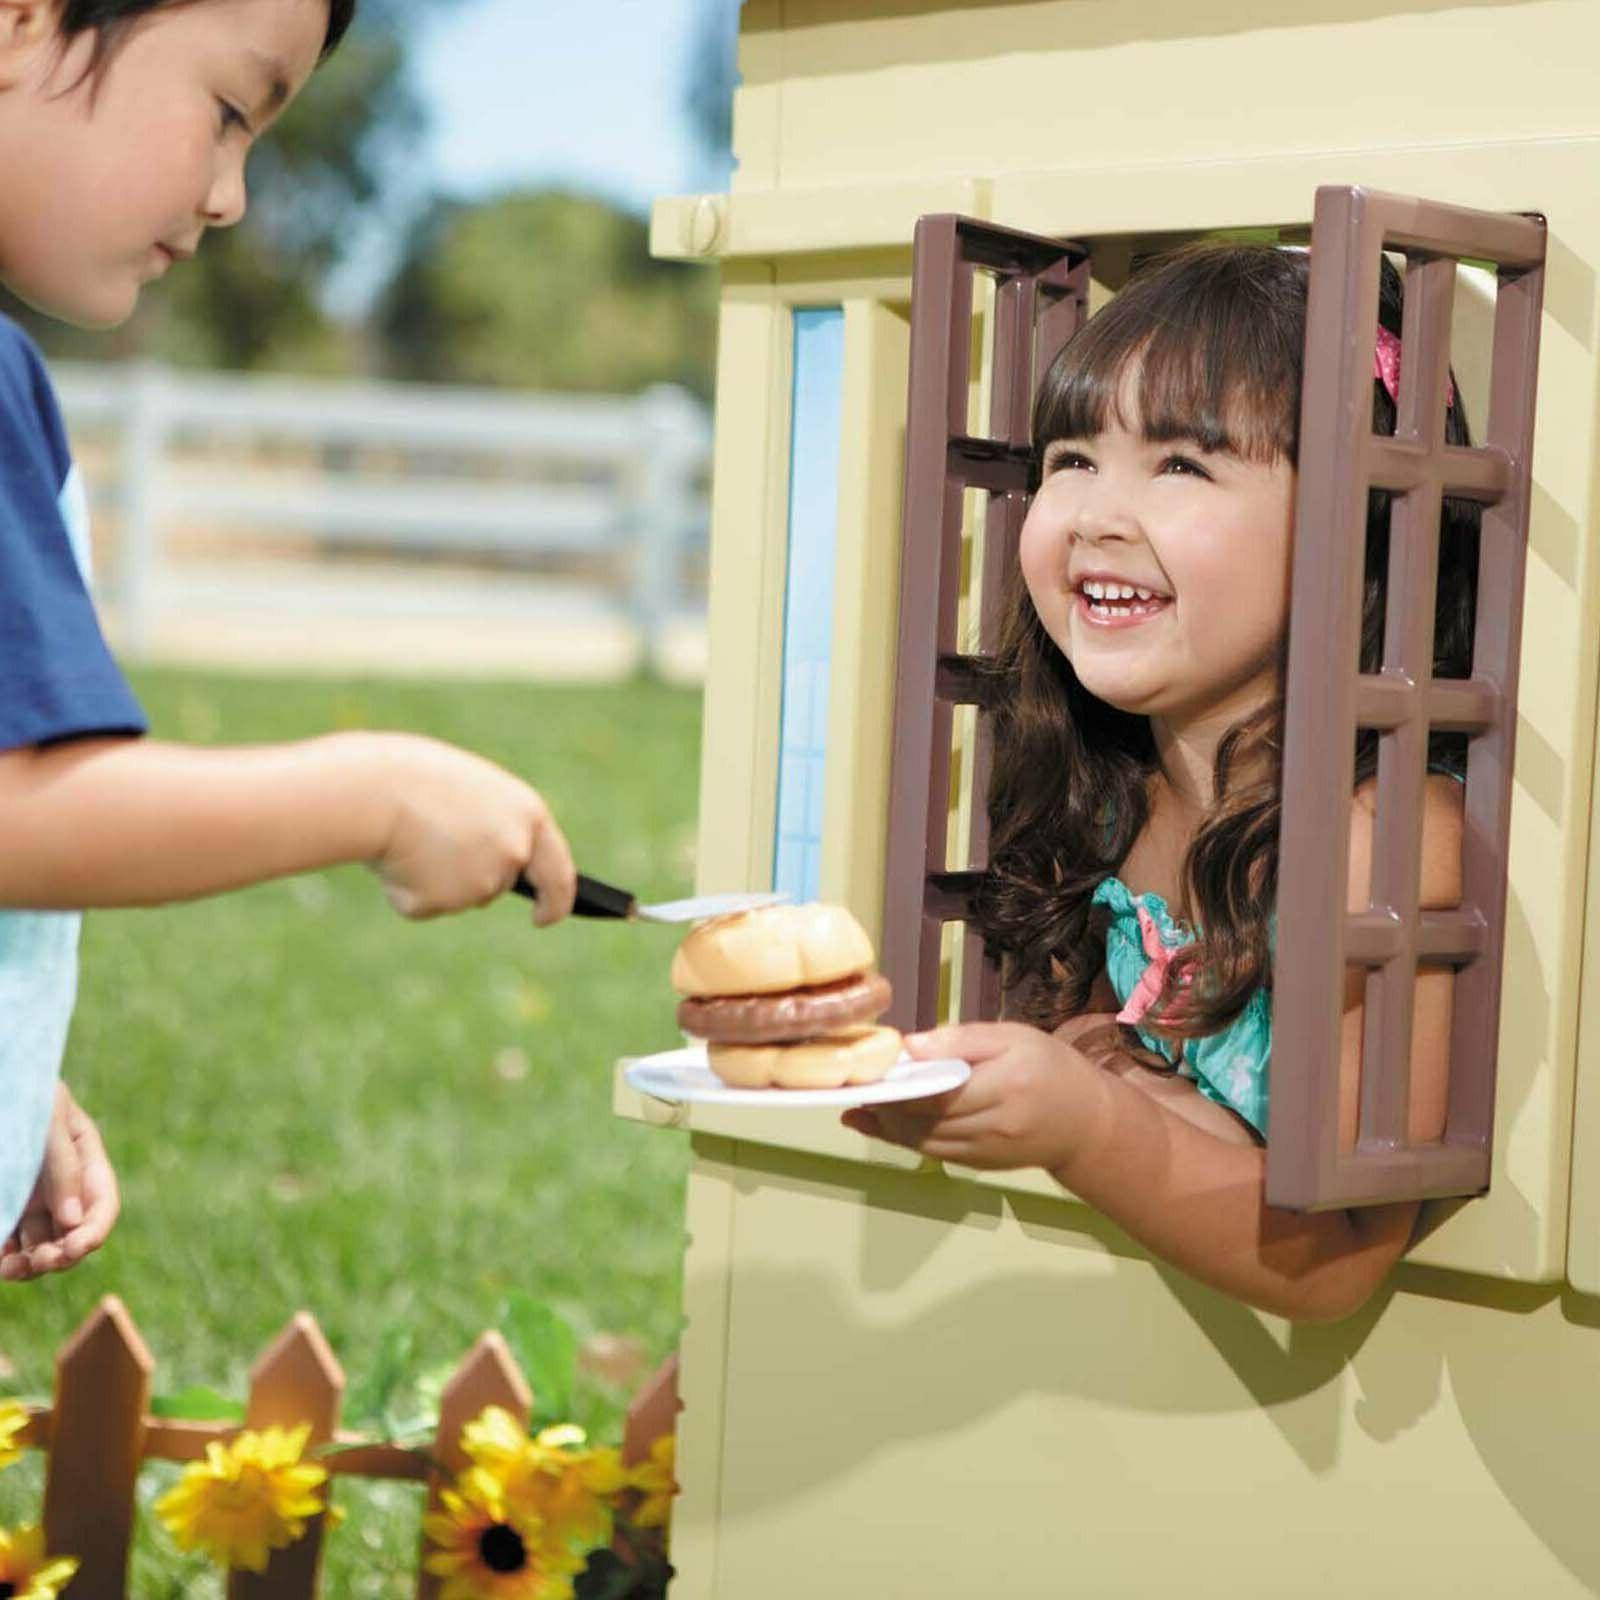 Playhouse Portable Outdoor Children Sturdy Light Plastic Toy